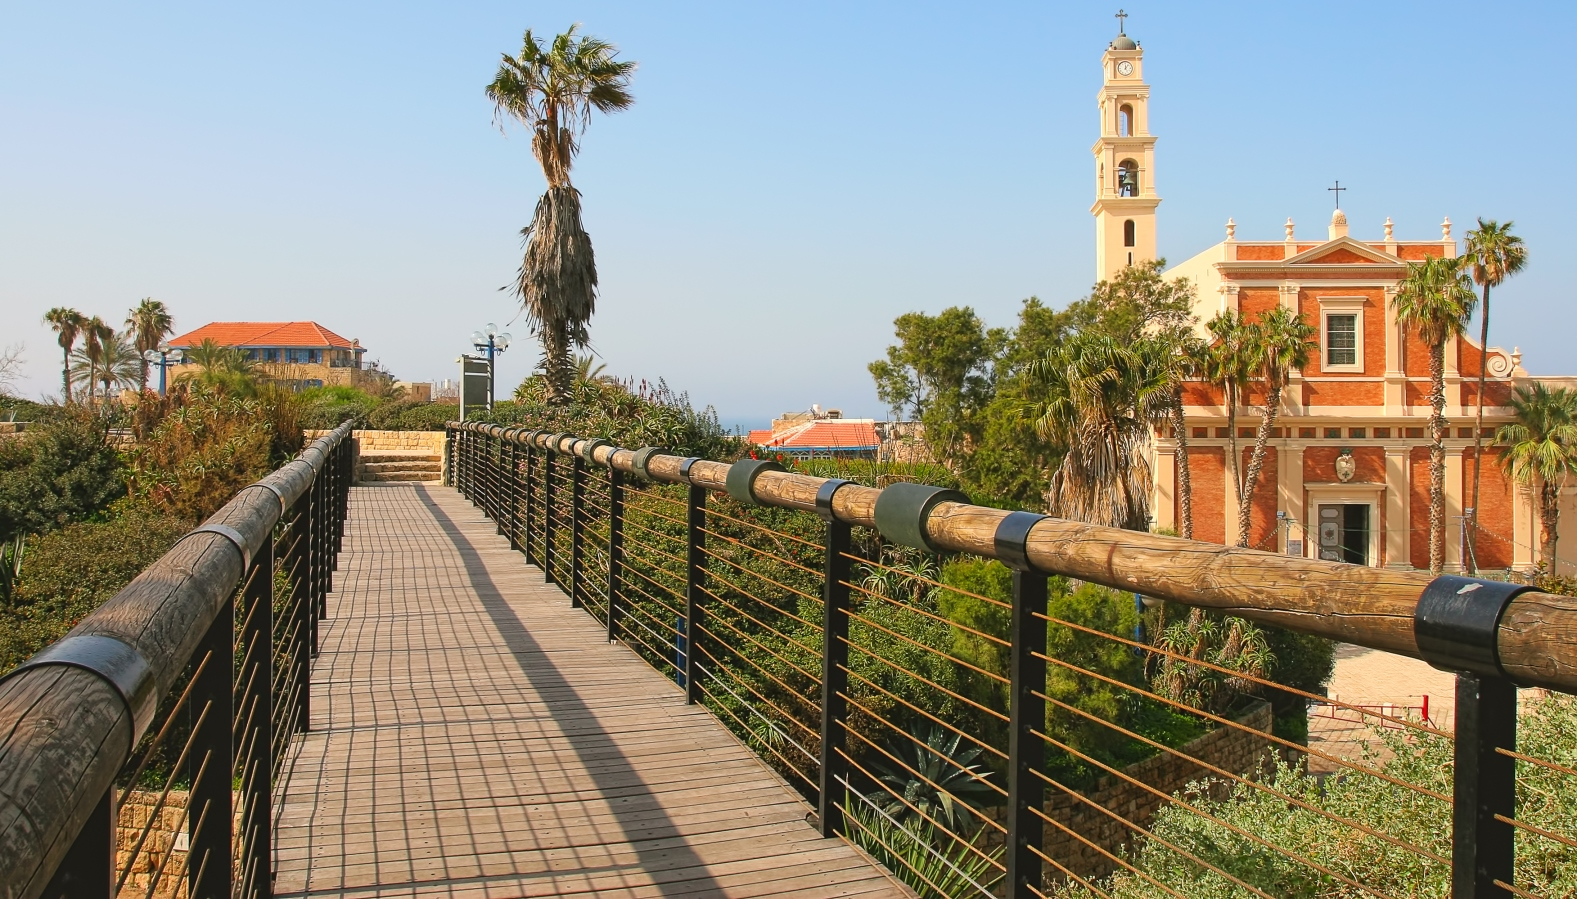 Wishing Bridge in Old Jaffa. Photo by Rostislav Glinsky via Shutterstock.com